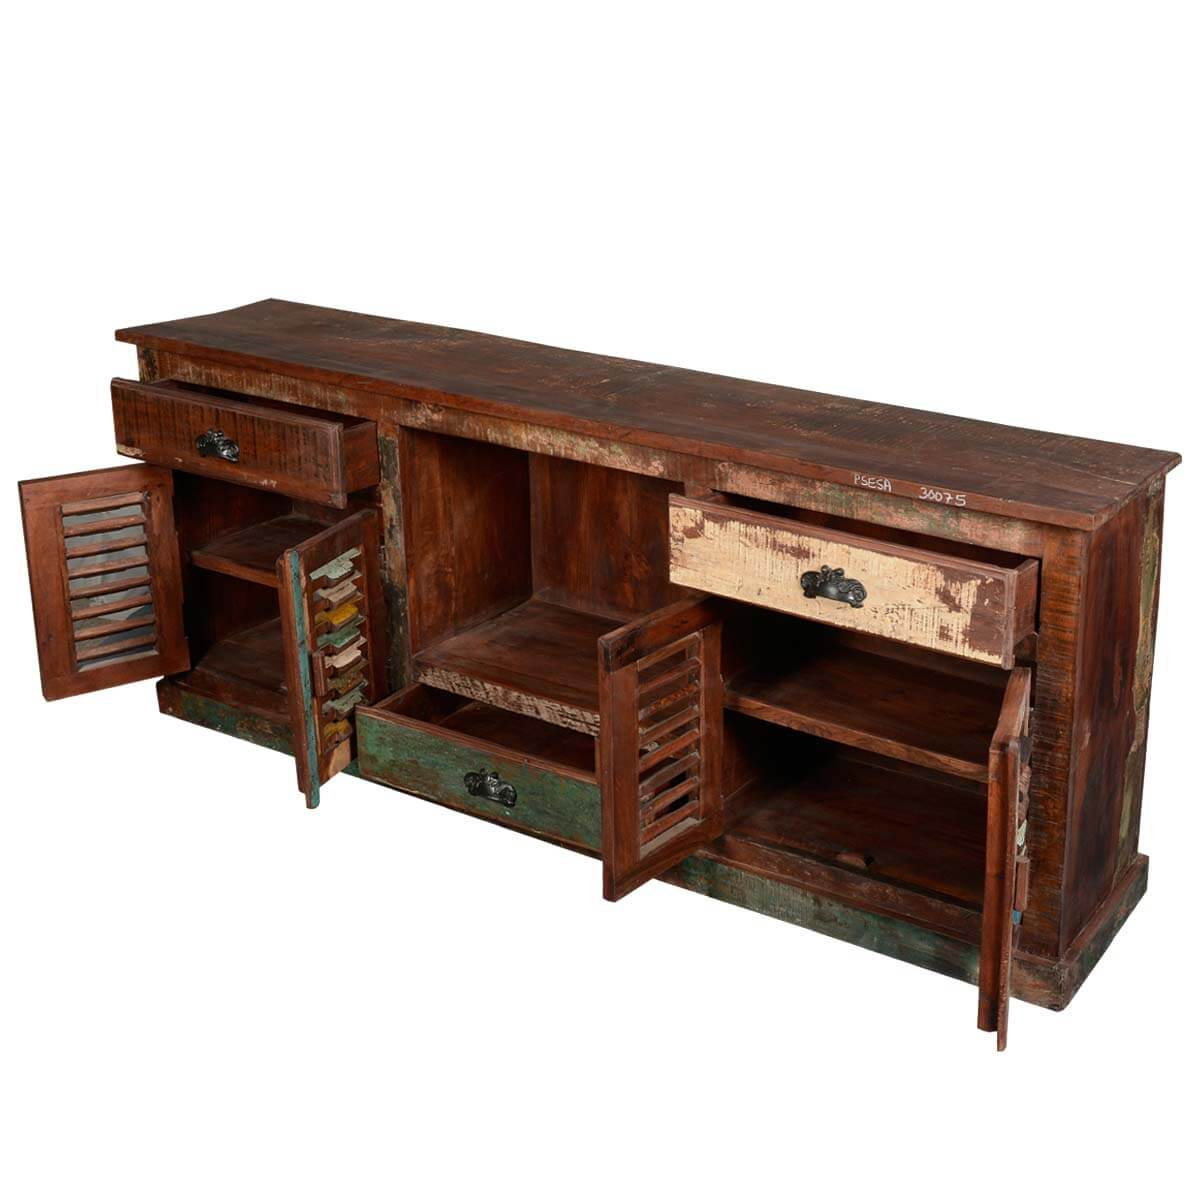 rustic reclaimed wood large tv stand media console. Black Bedroom Furniture Sets. Home Design Ideas